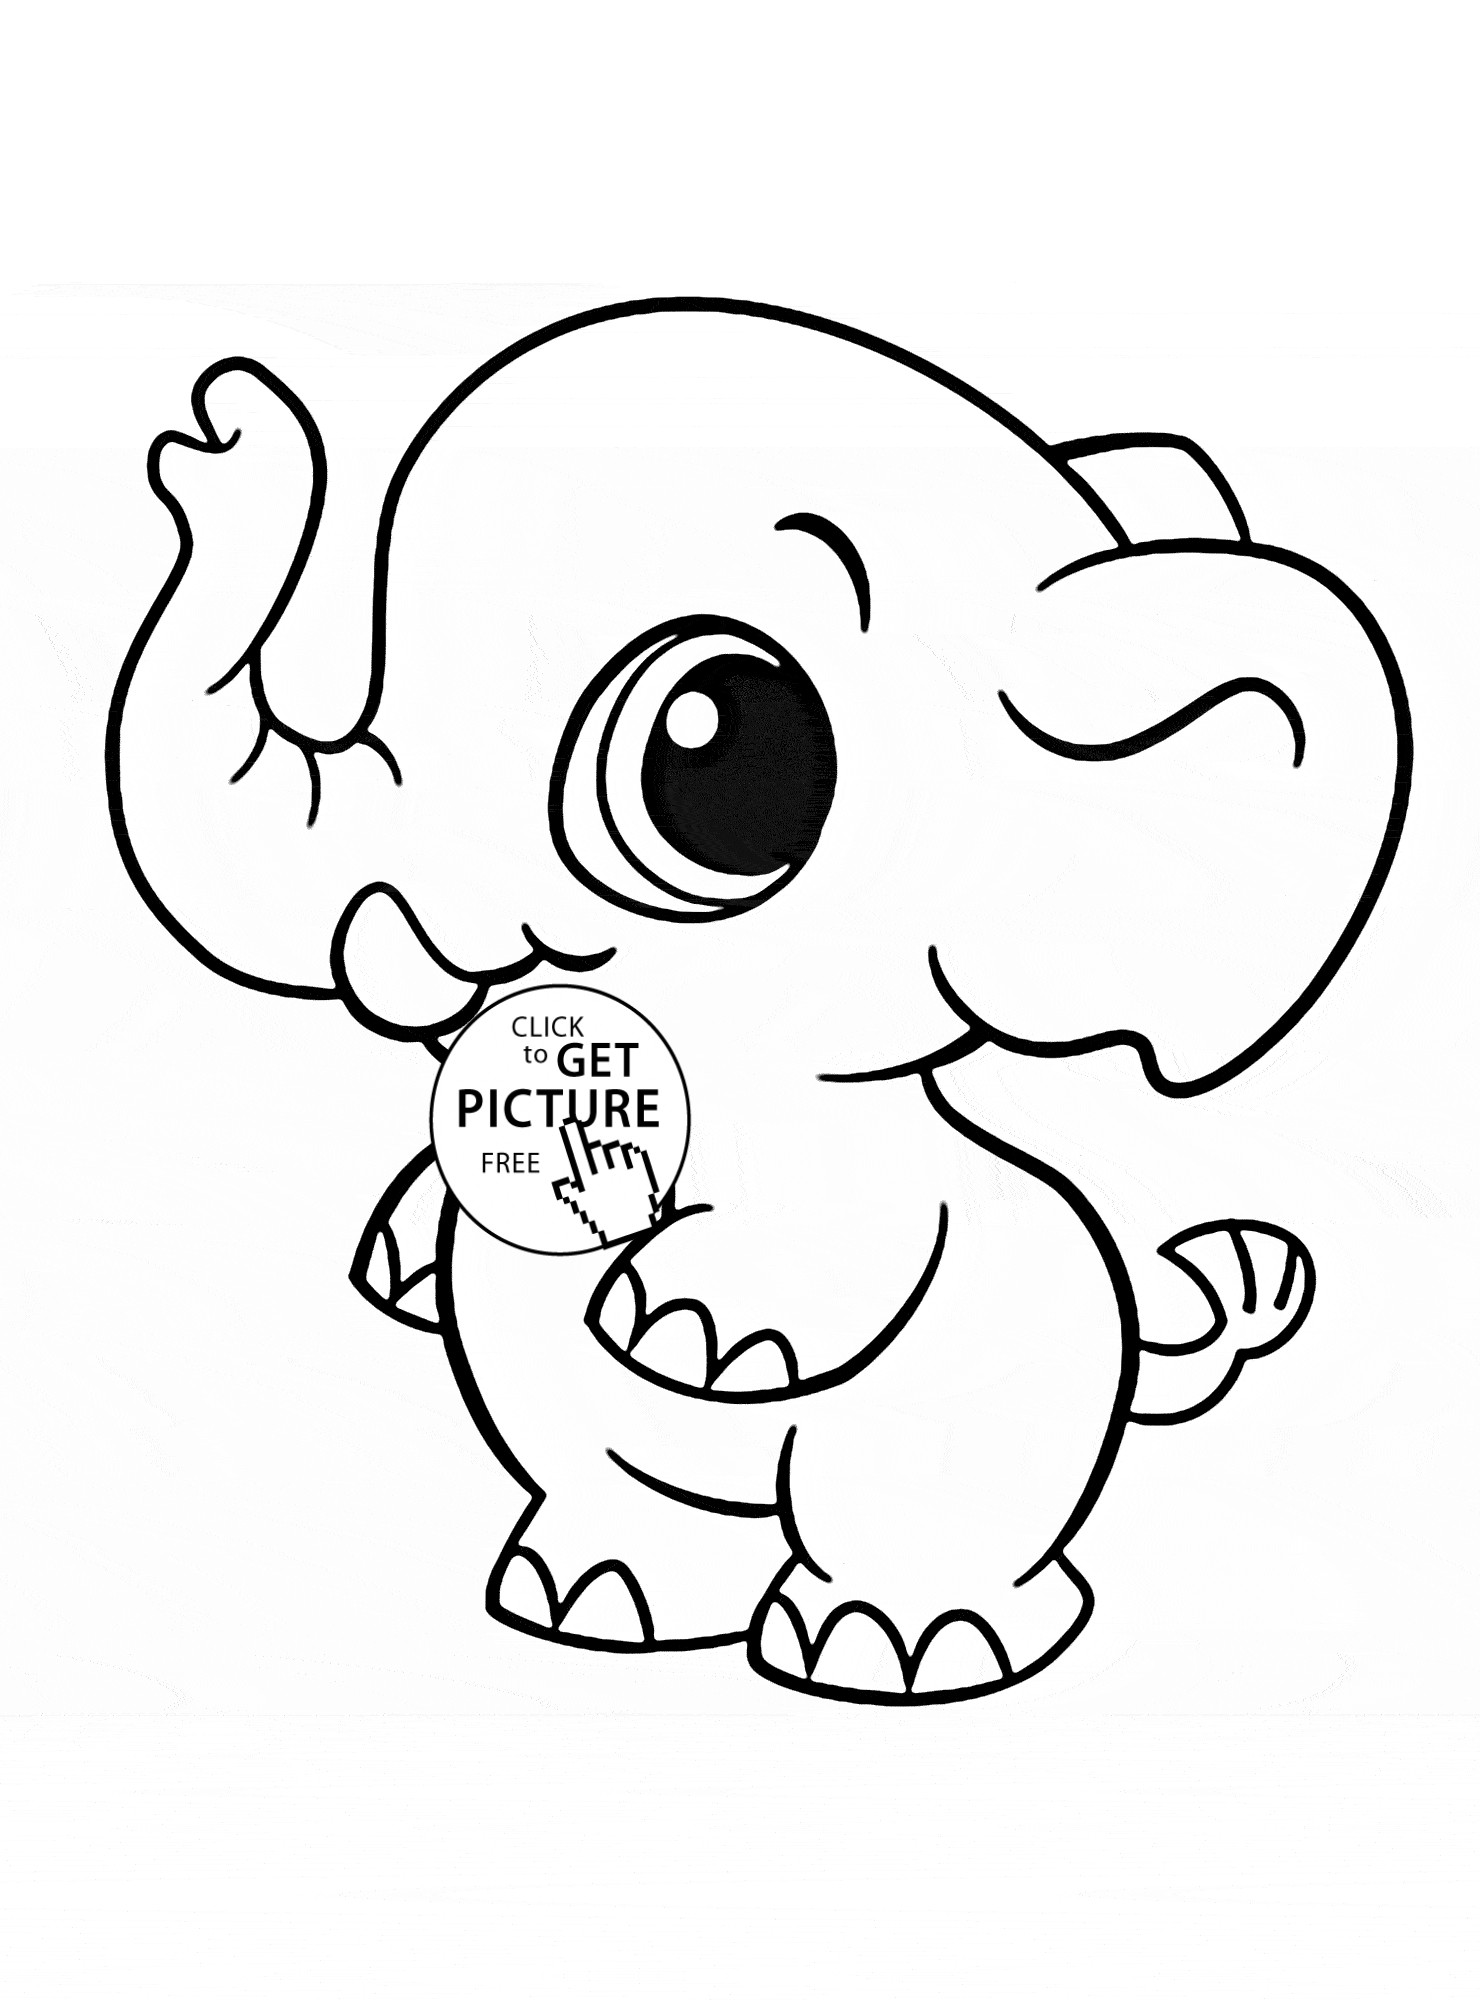 Printable Elephant Coloring Pages For Adults